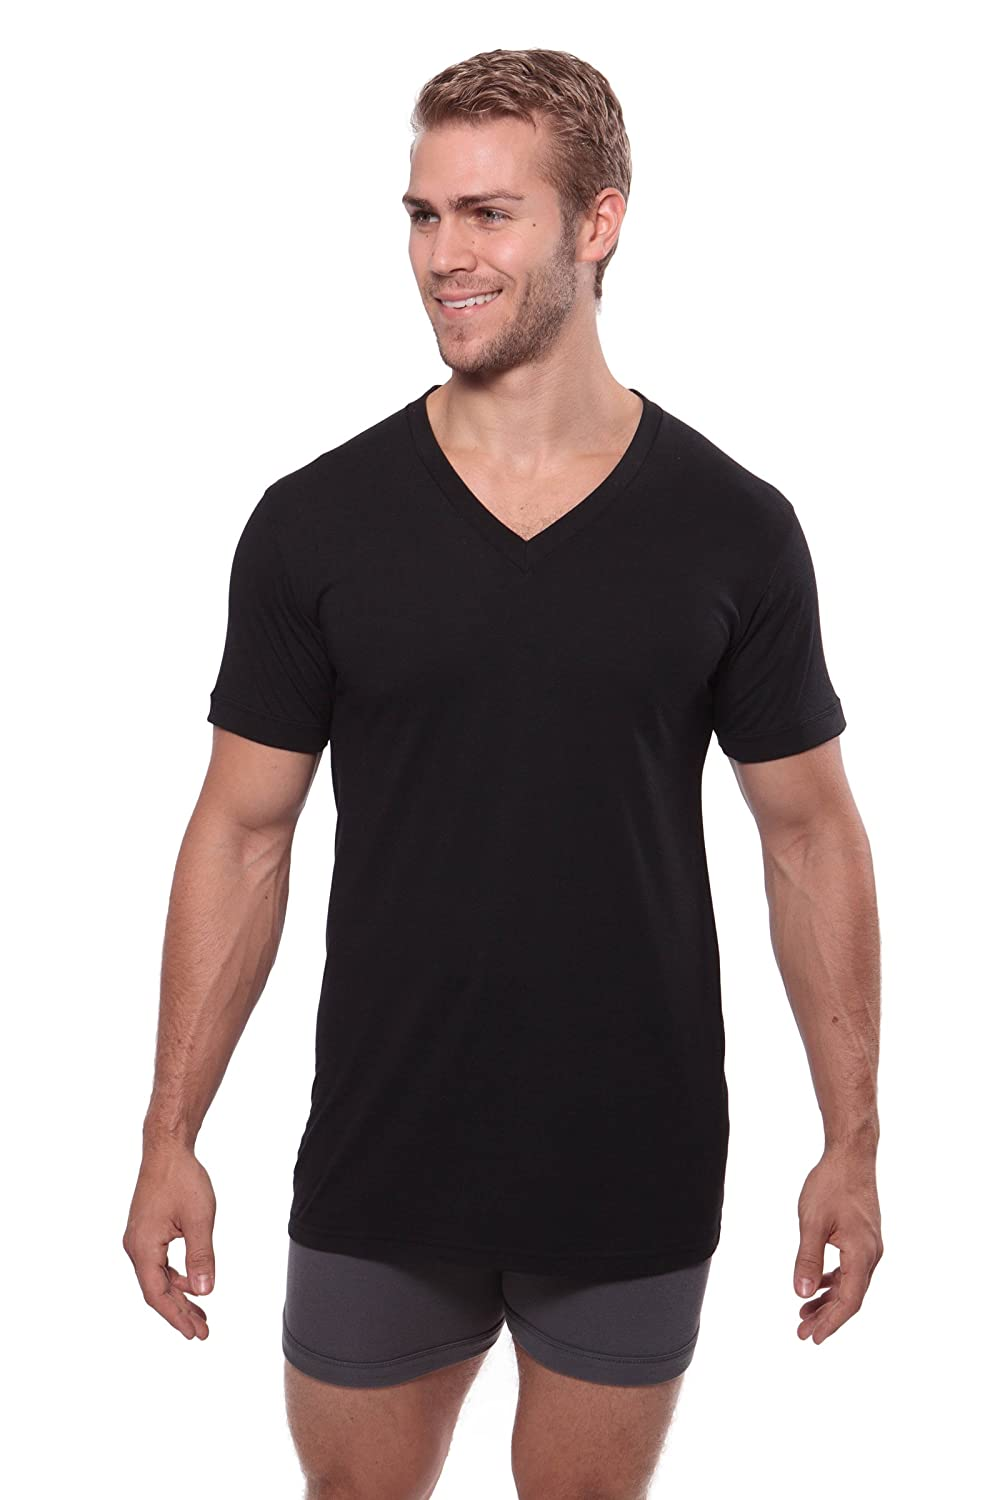 a27afa319 70% Bamboo Viscose / 30% Cotton Texere luxury v-neck undershirt exclusively  fulfilled by Amazon. Buy ONLY when indicated as being shipped by Amazon  (SKU: ...